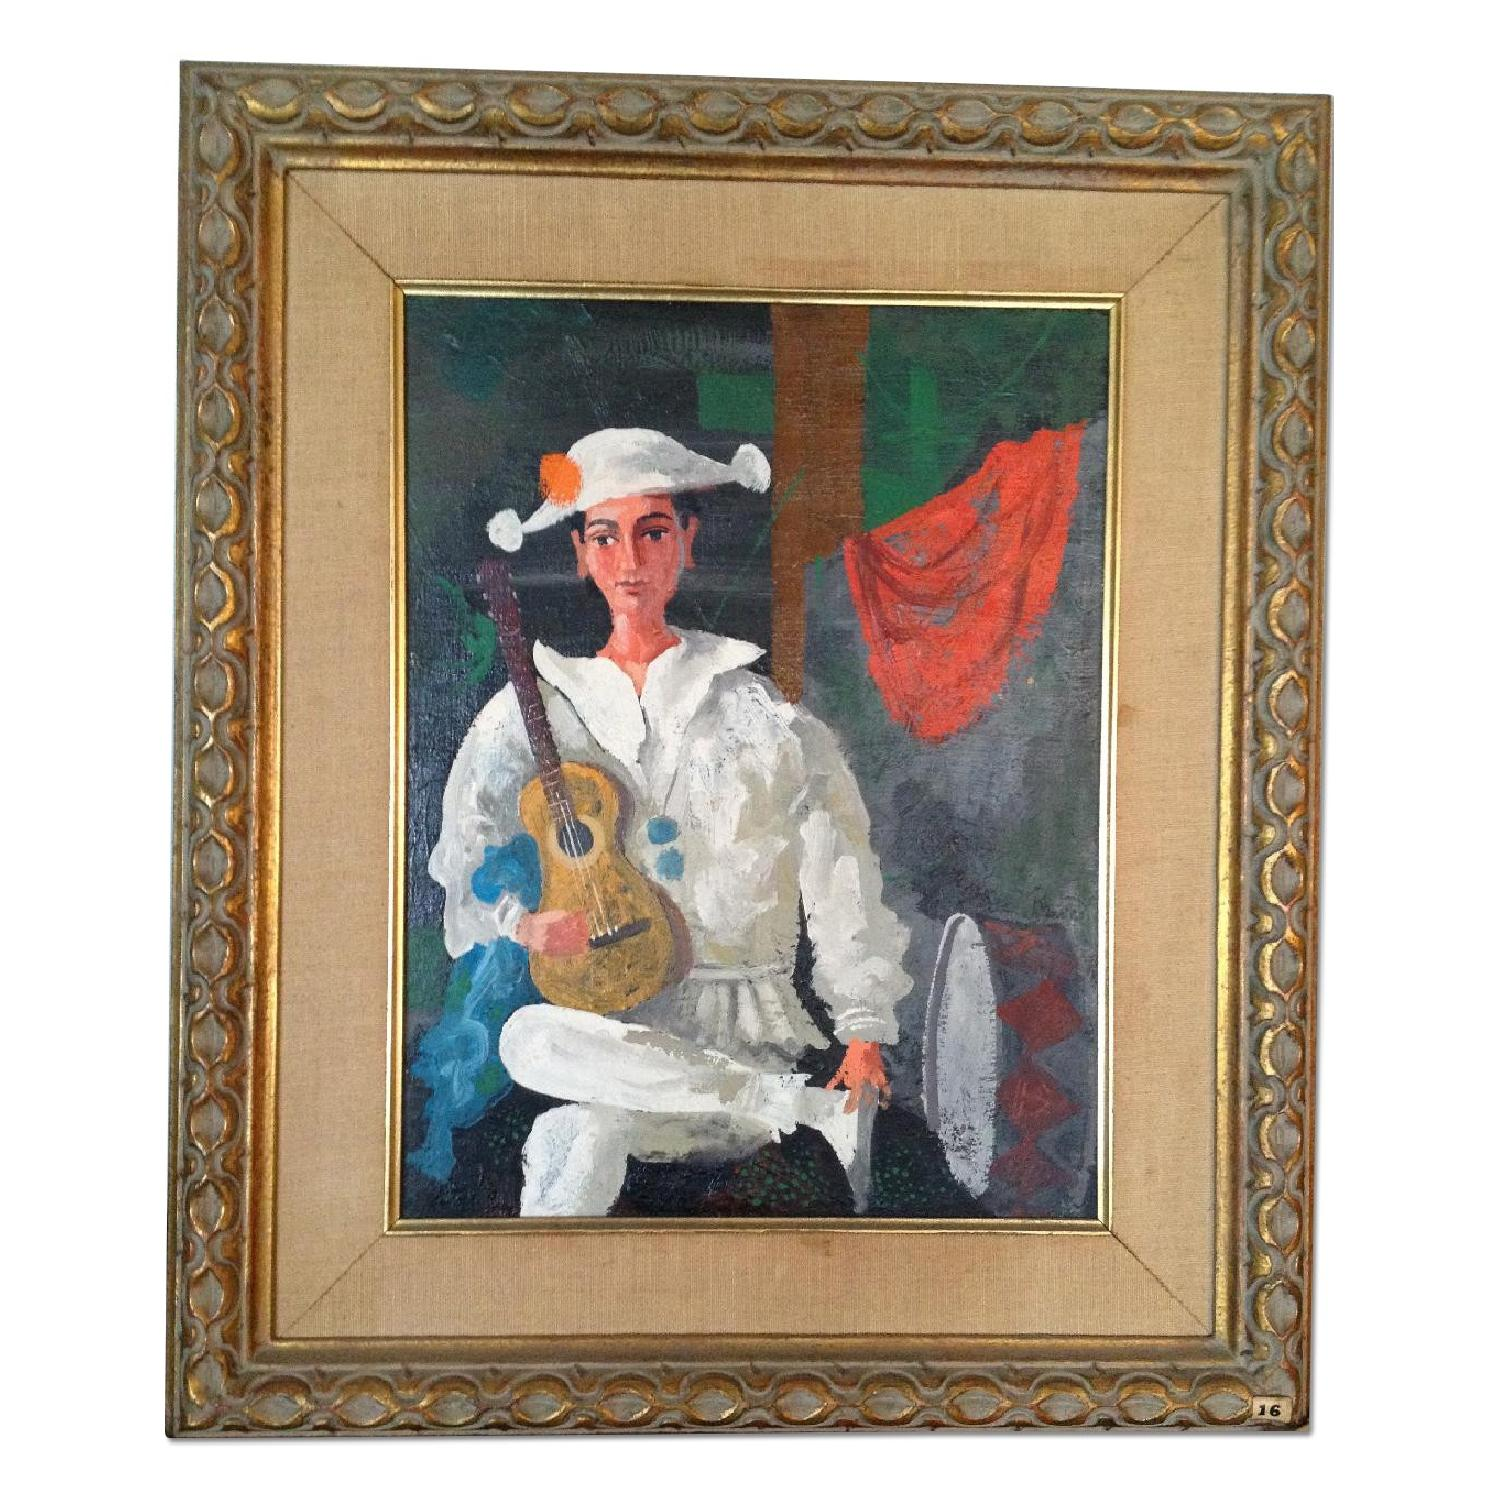 Byron Browne 1960 Oil Painting - The Clown - image-0